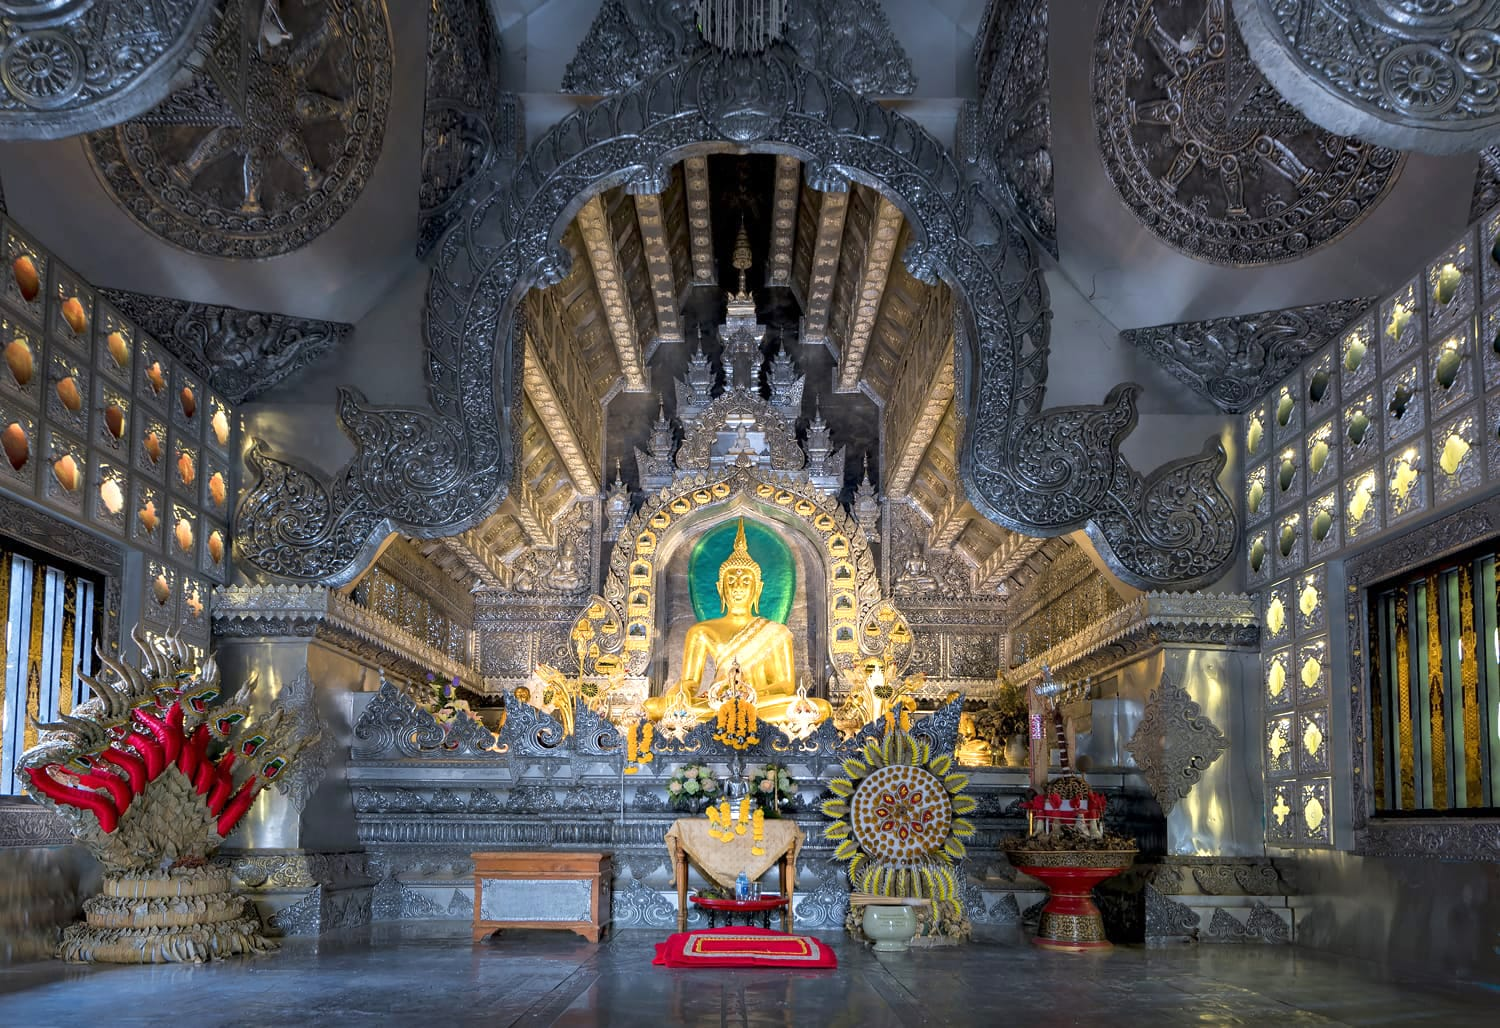 Inside Wat Sri Suphan, the famous Silver Temple in Chiang Mai, Thailand